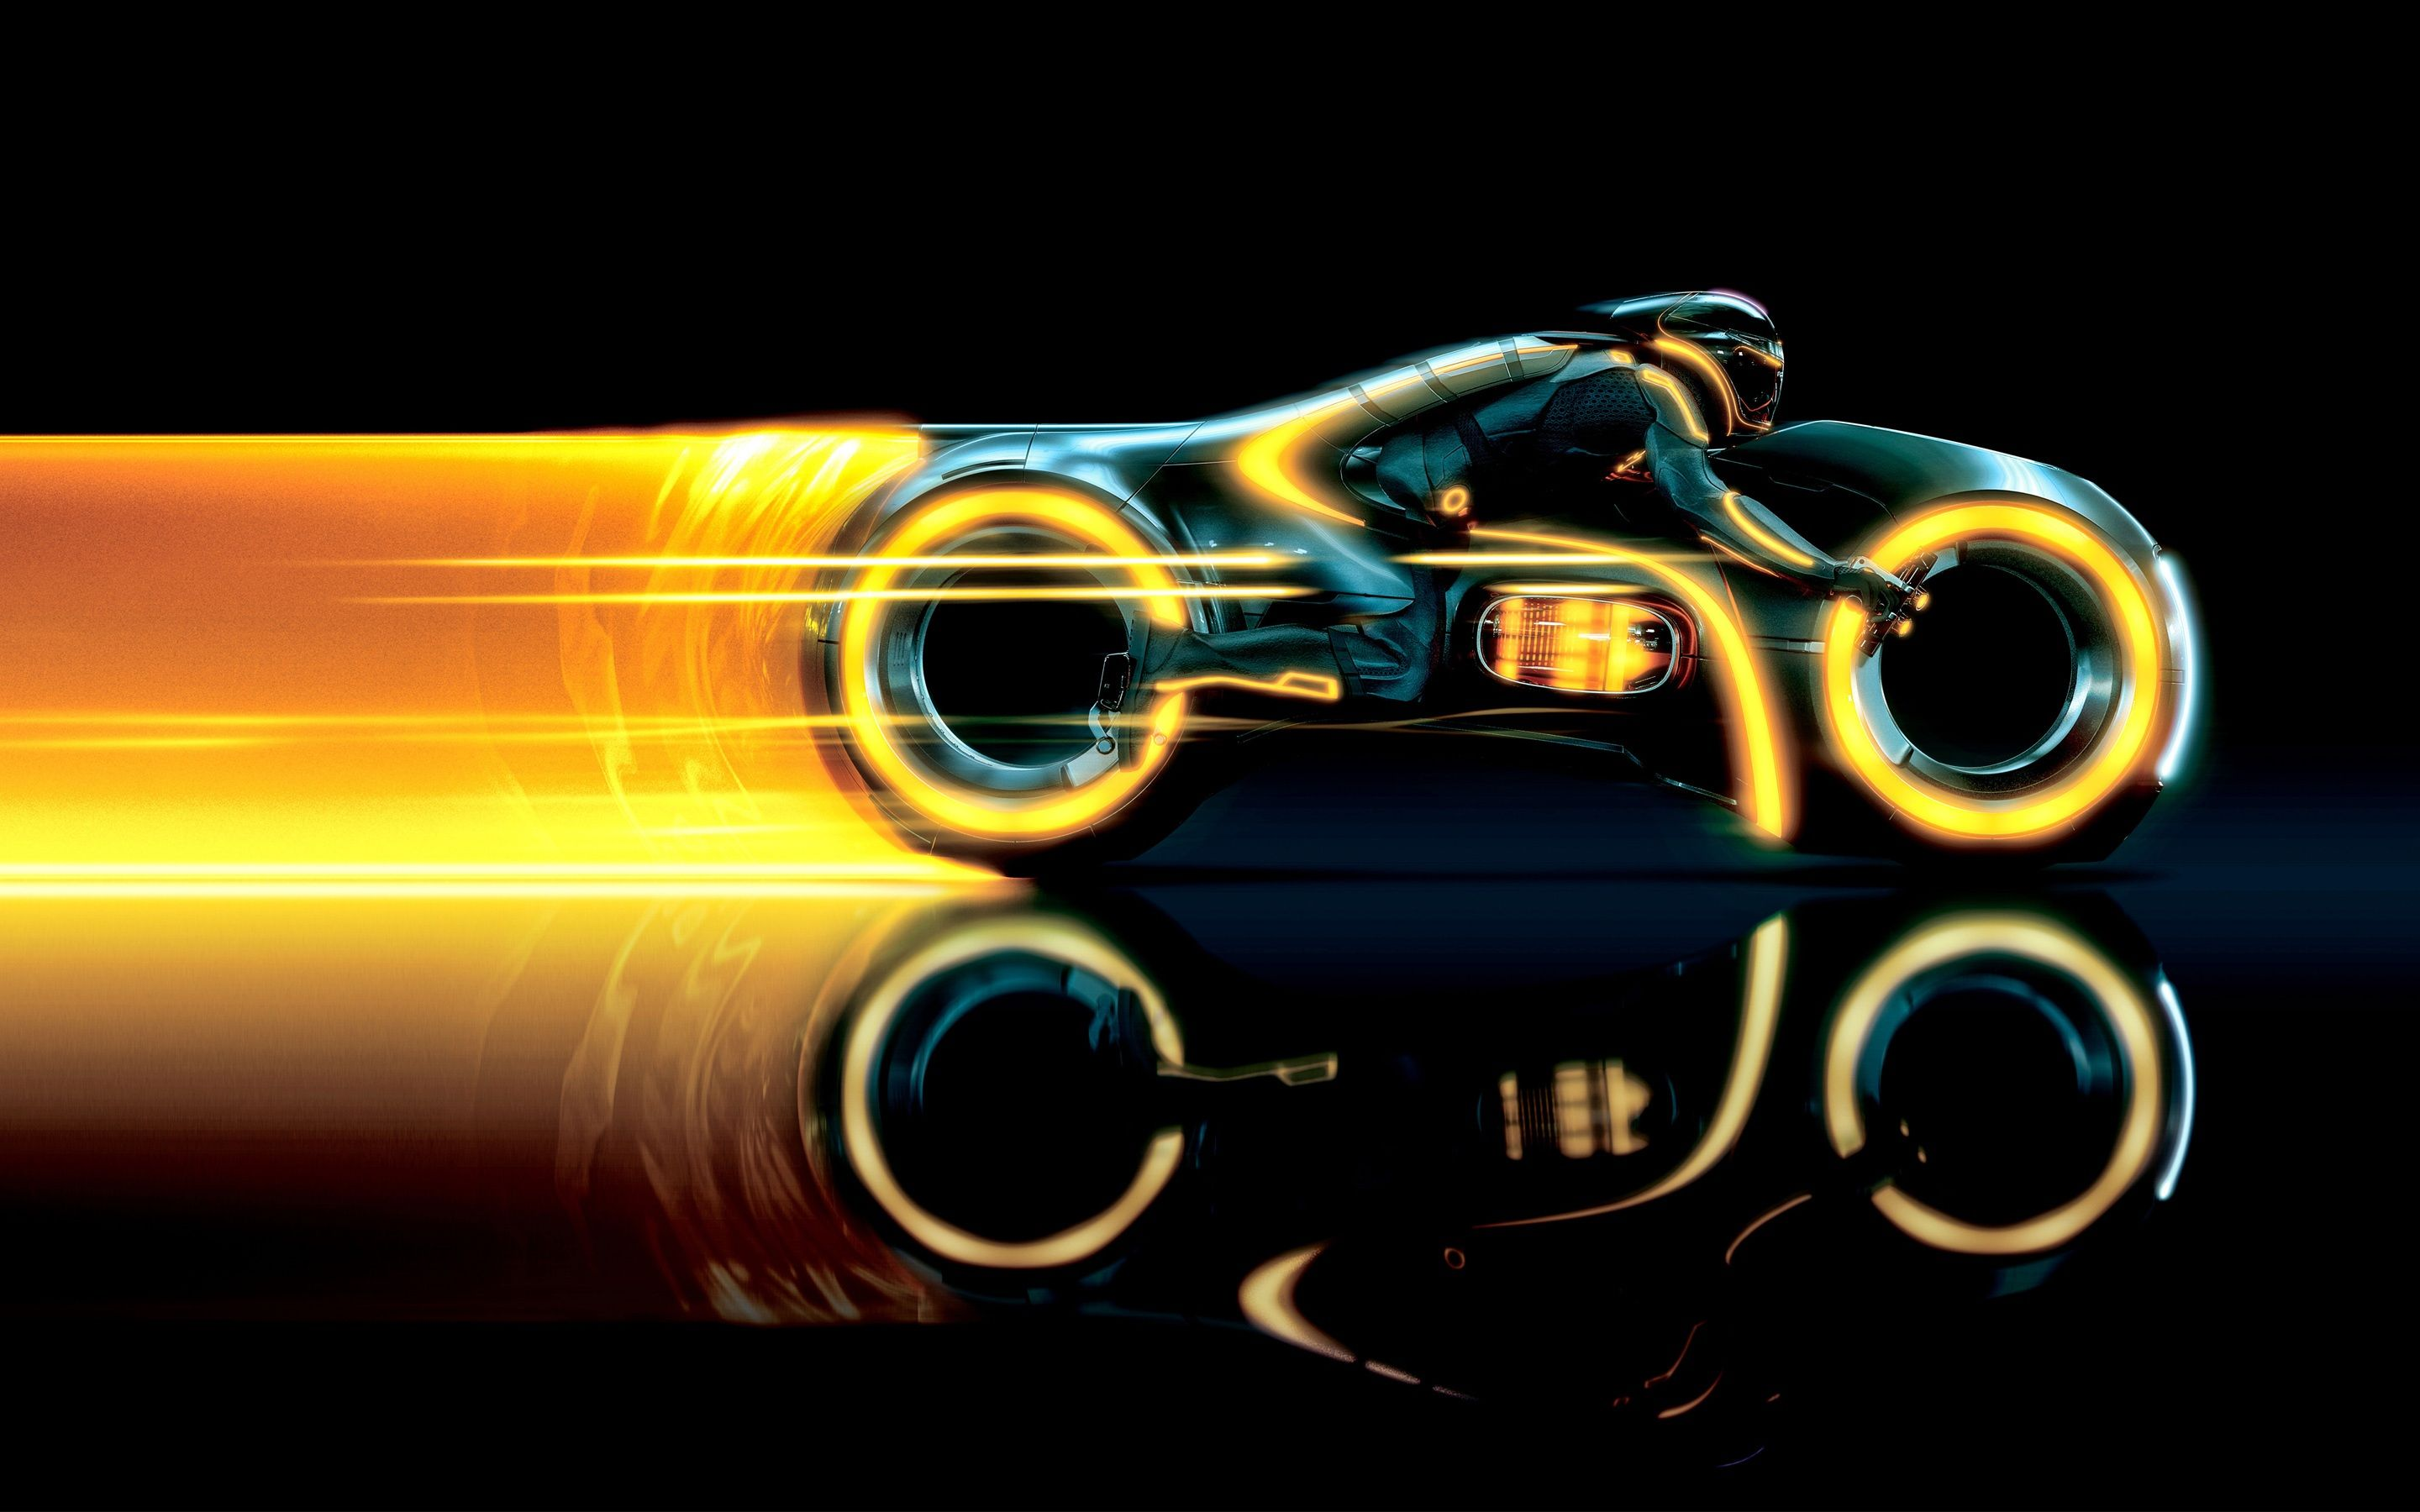 Tron Legacy Lightcycle Wallpapers Hd Wallpapers Hd Wallpapers C4d